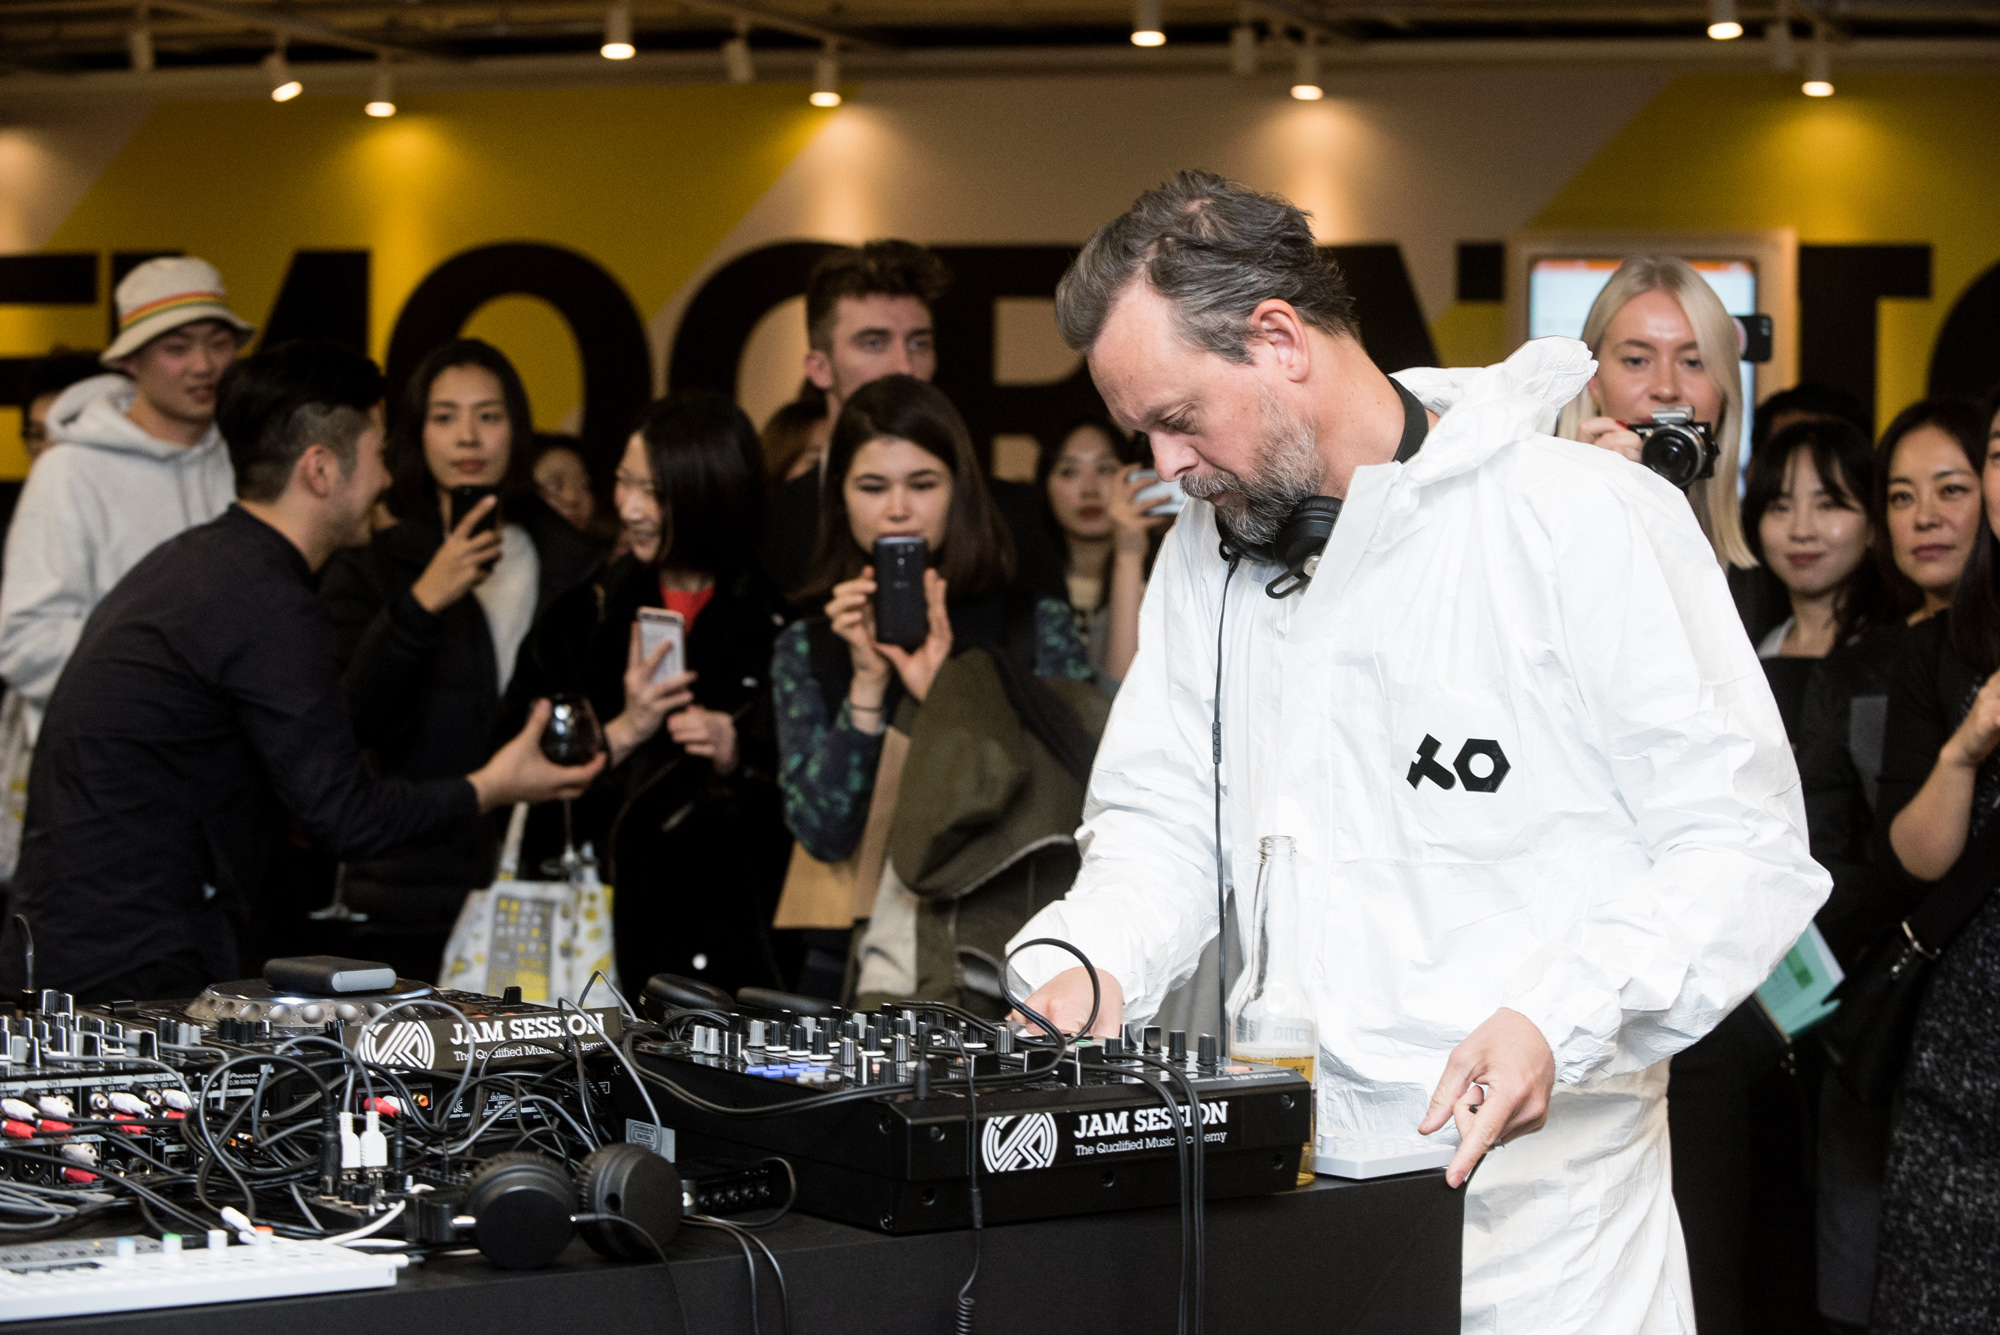 A DJ in a white jumpsuit works audio equipment before a crowd.